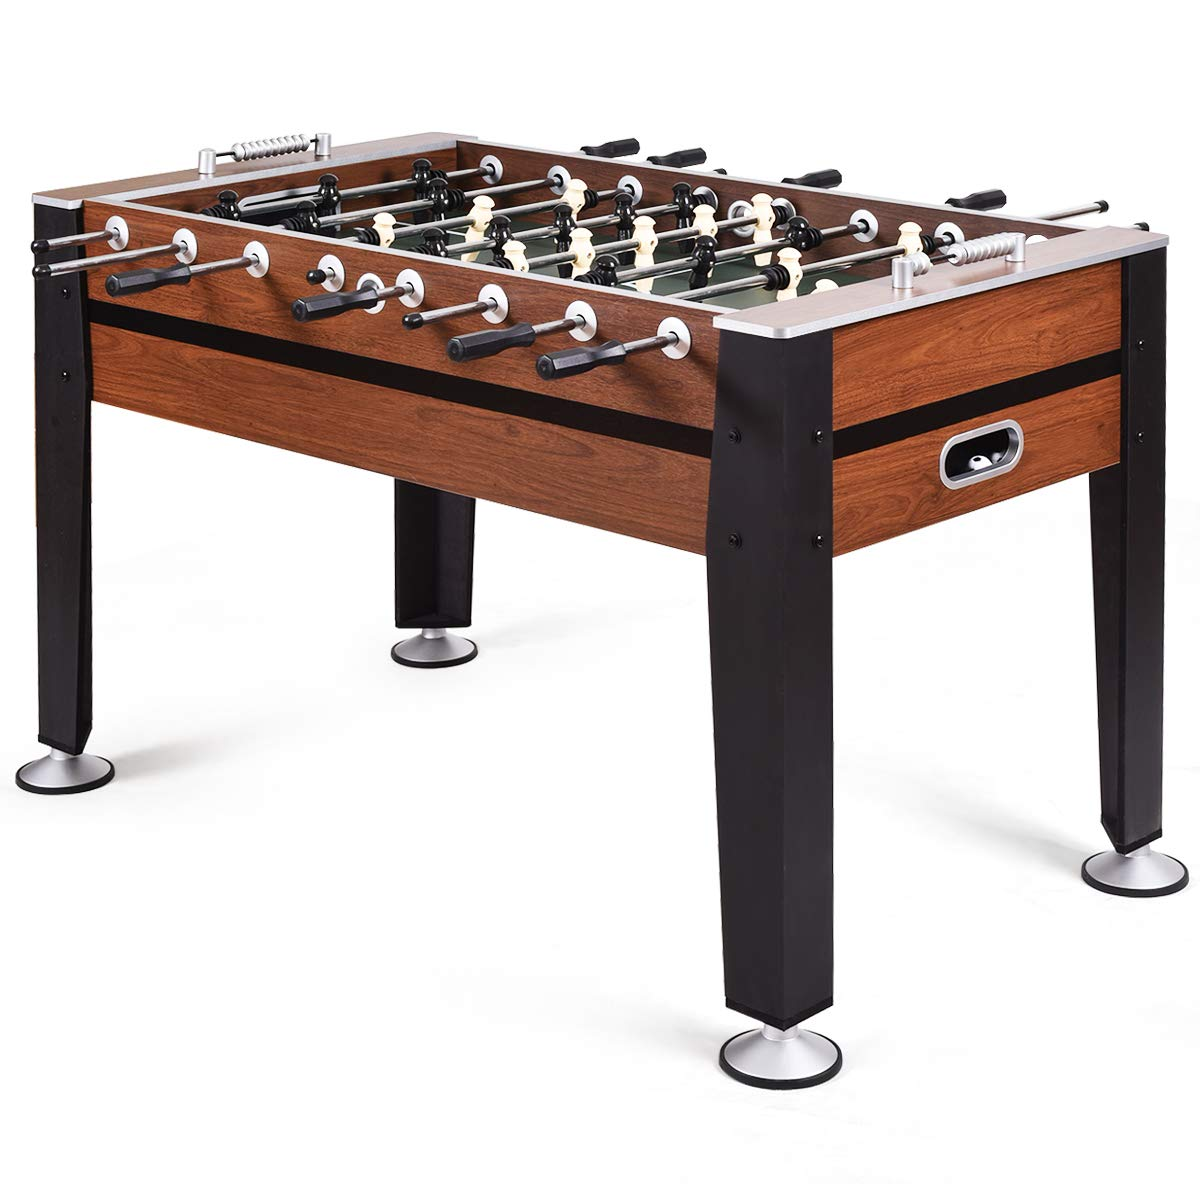 GOPLUS 54'' Foosball Table, Soccer Game Table Competition Sized Football Arcade for Indoor Game Room Sport by Goplus